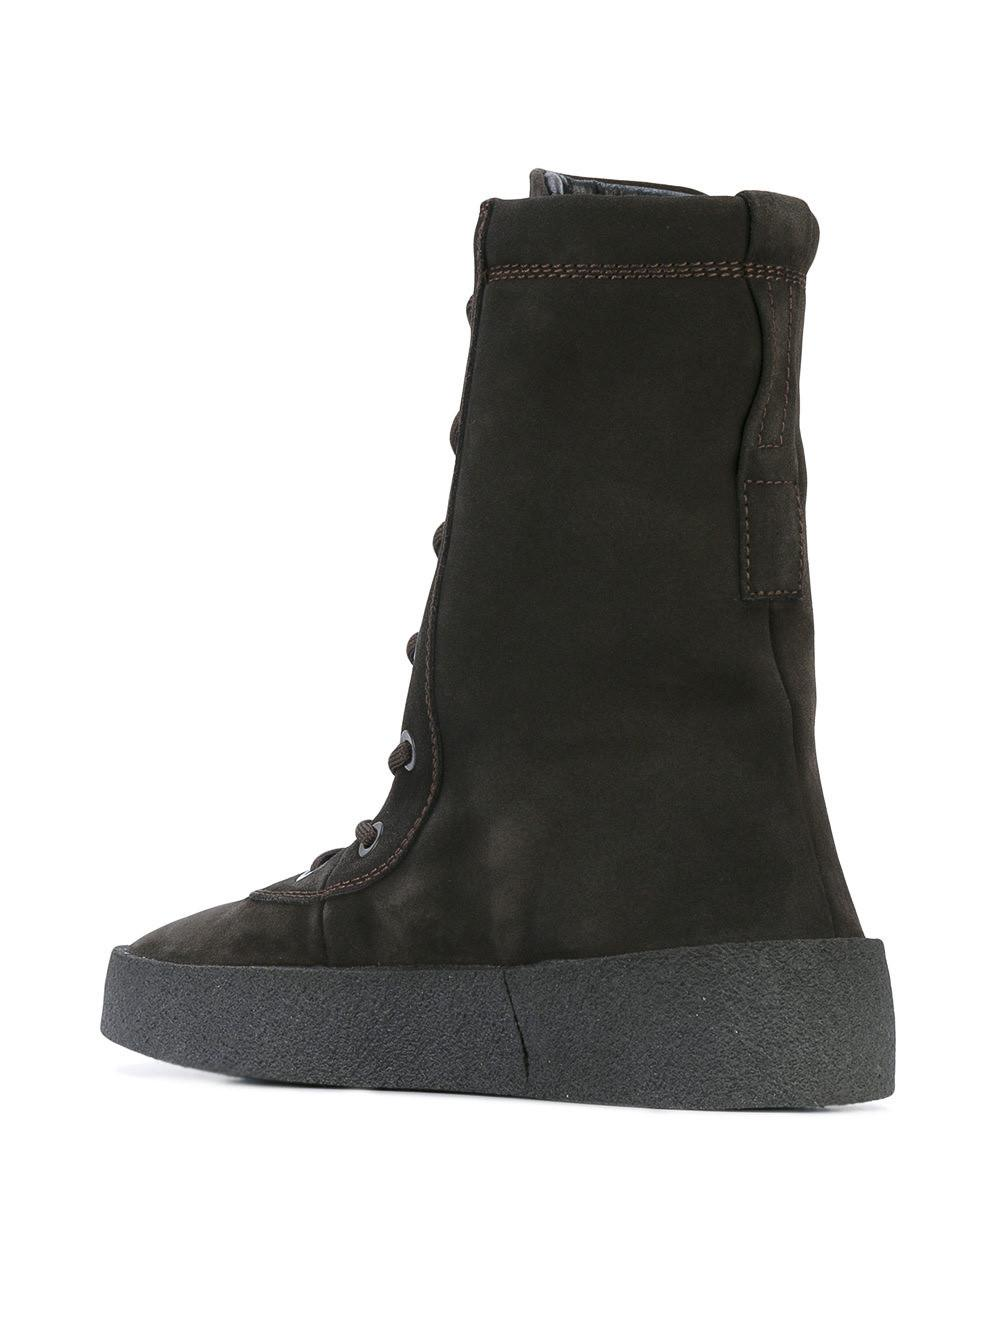 42c98651bbc Yeezy Suede Lace Up Boots